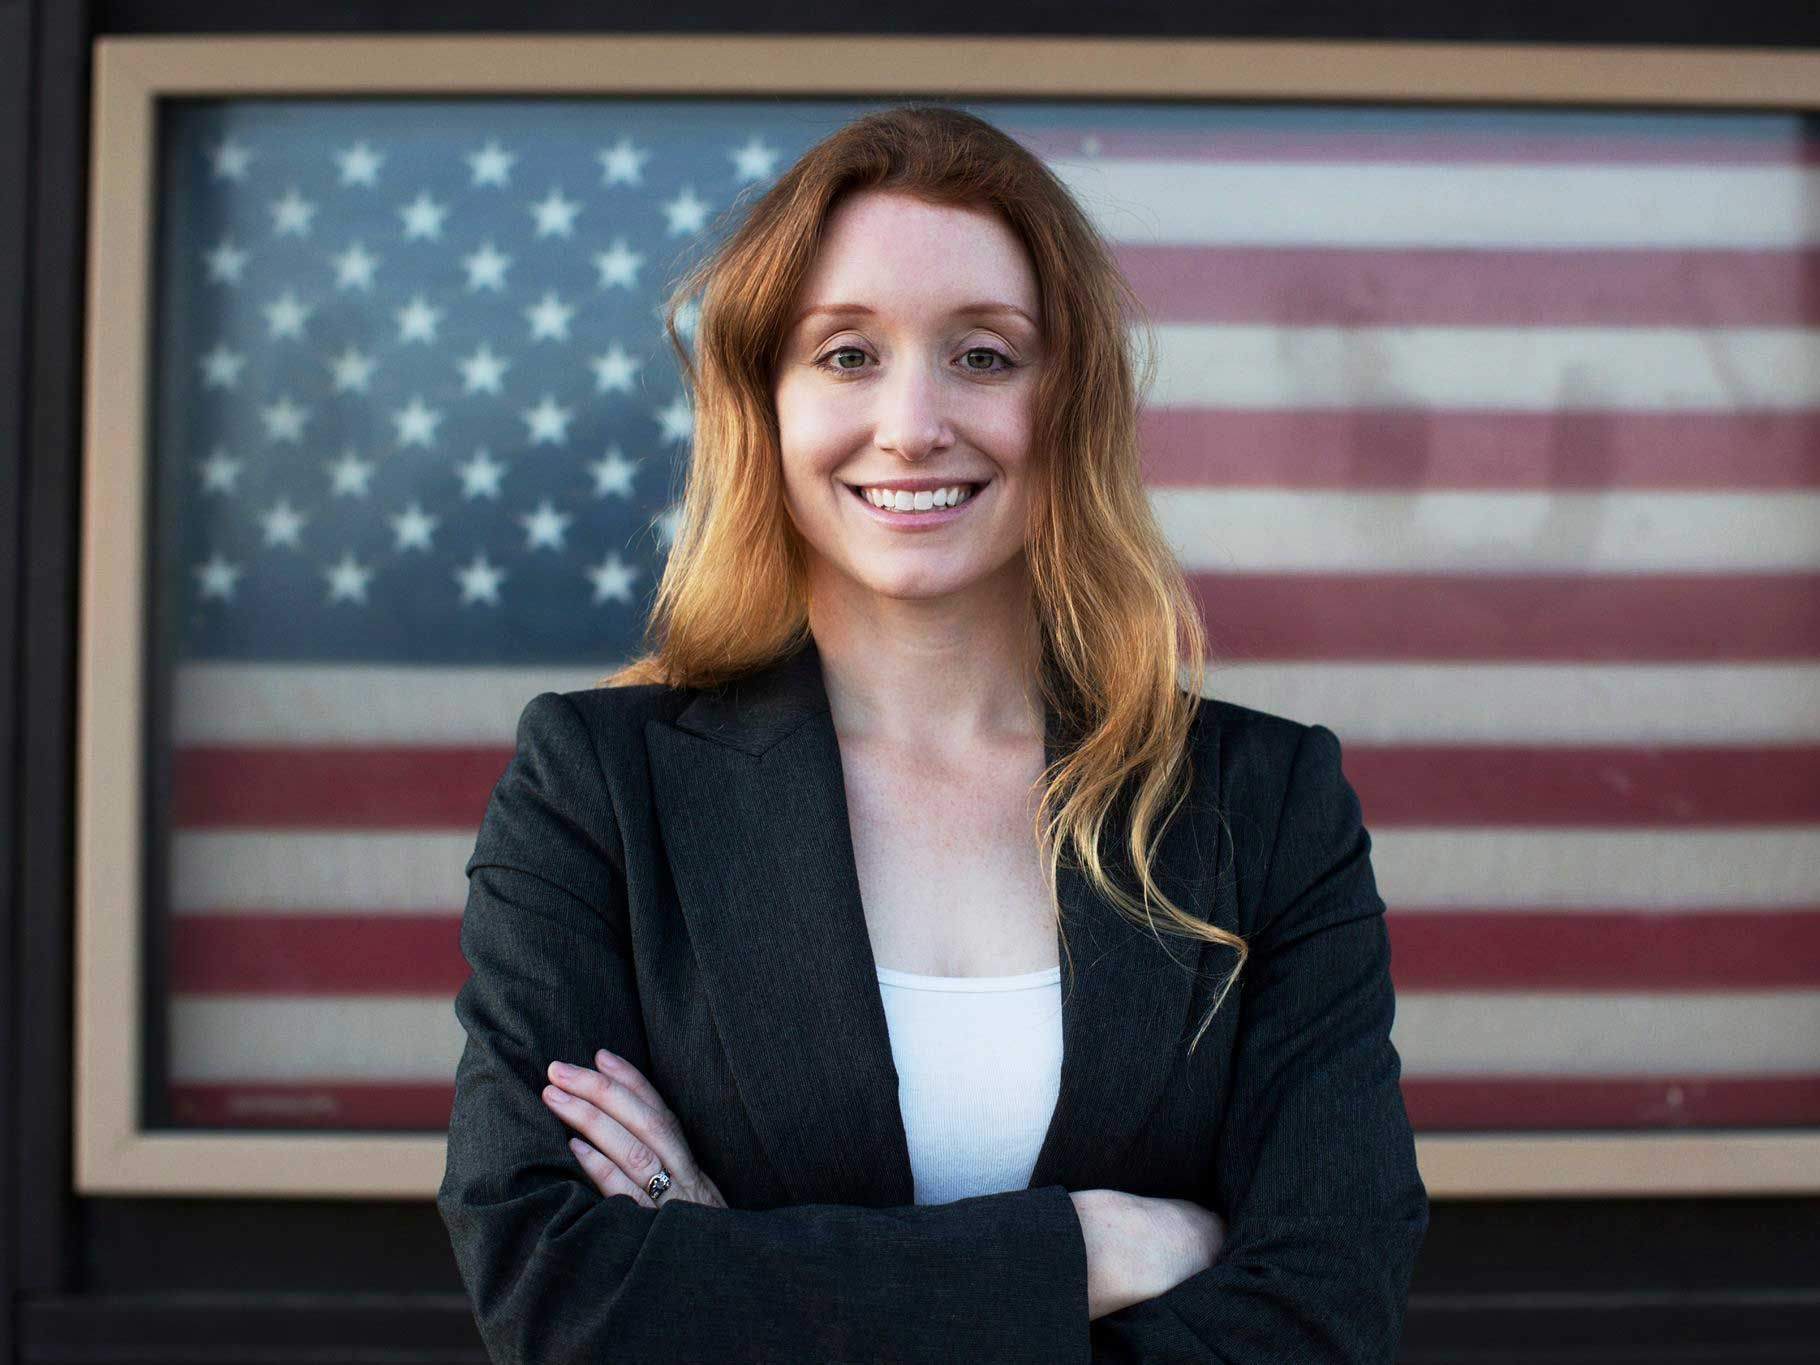 f84e7ccd7743 This Scientist Wants to Bring  Star Trek  Values to Congress ...